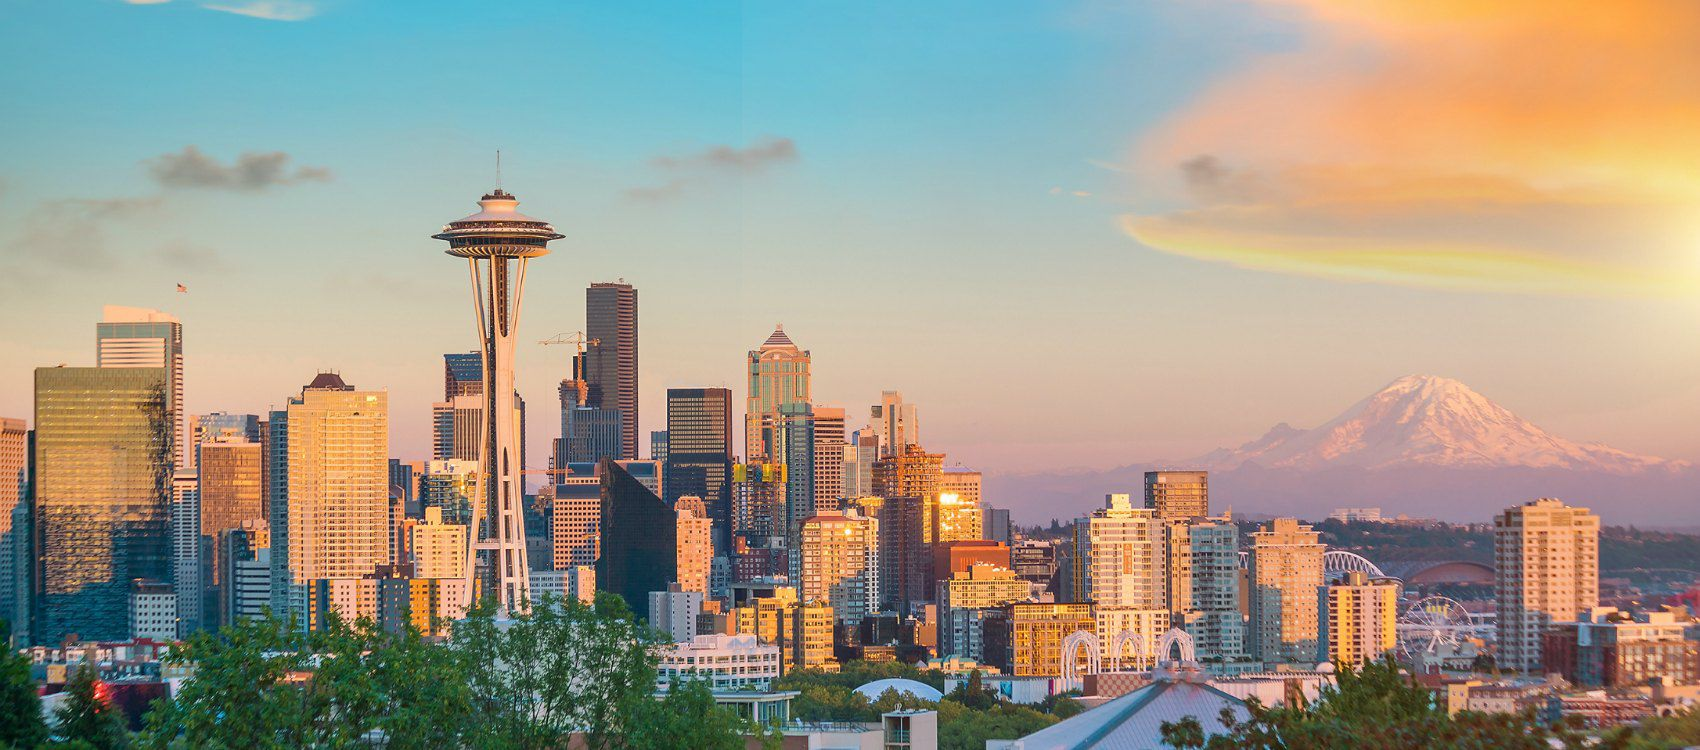 Best Boutique Hotels in Downtown Seattle, WA | Kimpton Hotels on seattle seahawks map, federal way hotel map, bellingham hotel map, renton hotel map, seattle city map, seattle downtown apartments, vancouver hotel map, colorado springs airport hotel map, seattle downtown shopping, kent hotel map, totem lake hotel map, ballard hotel map, miami south beach hotel map,